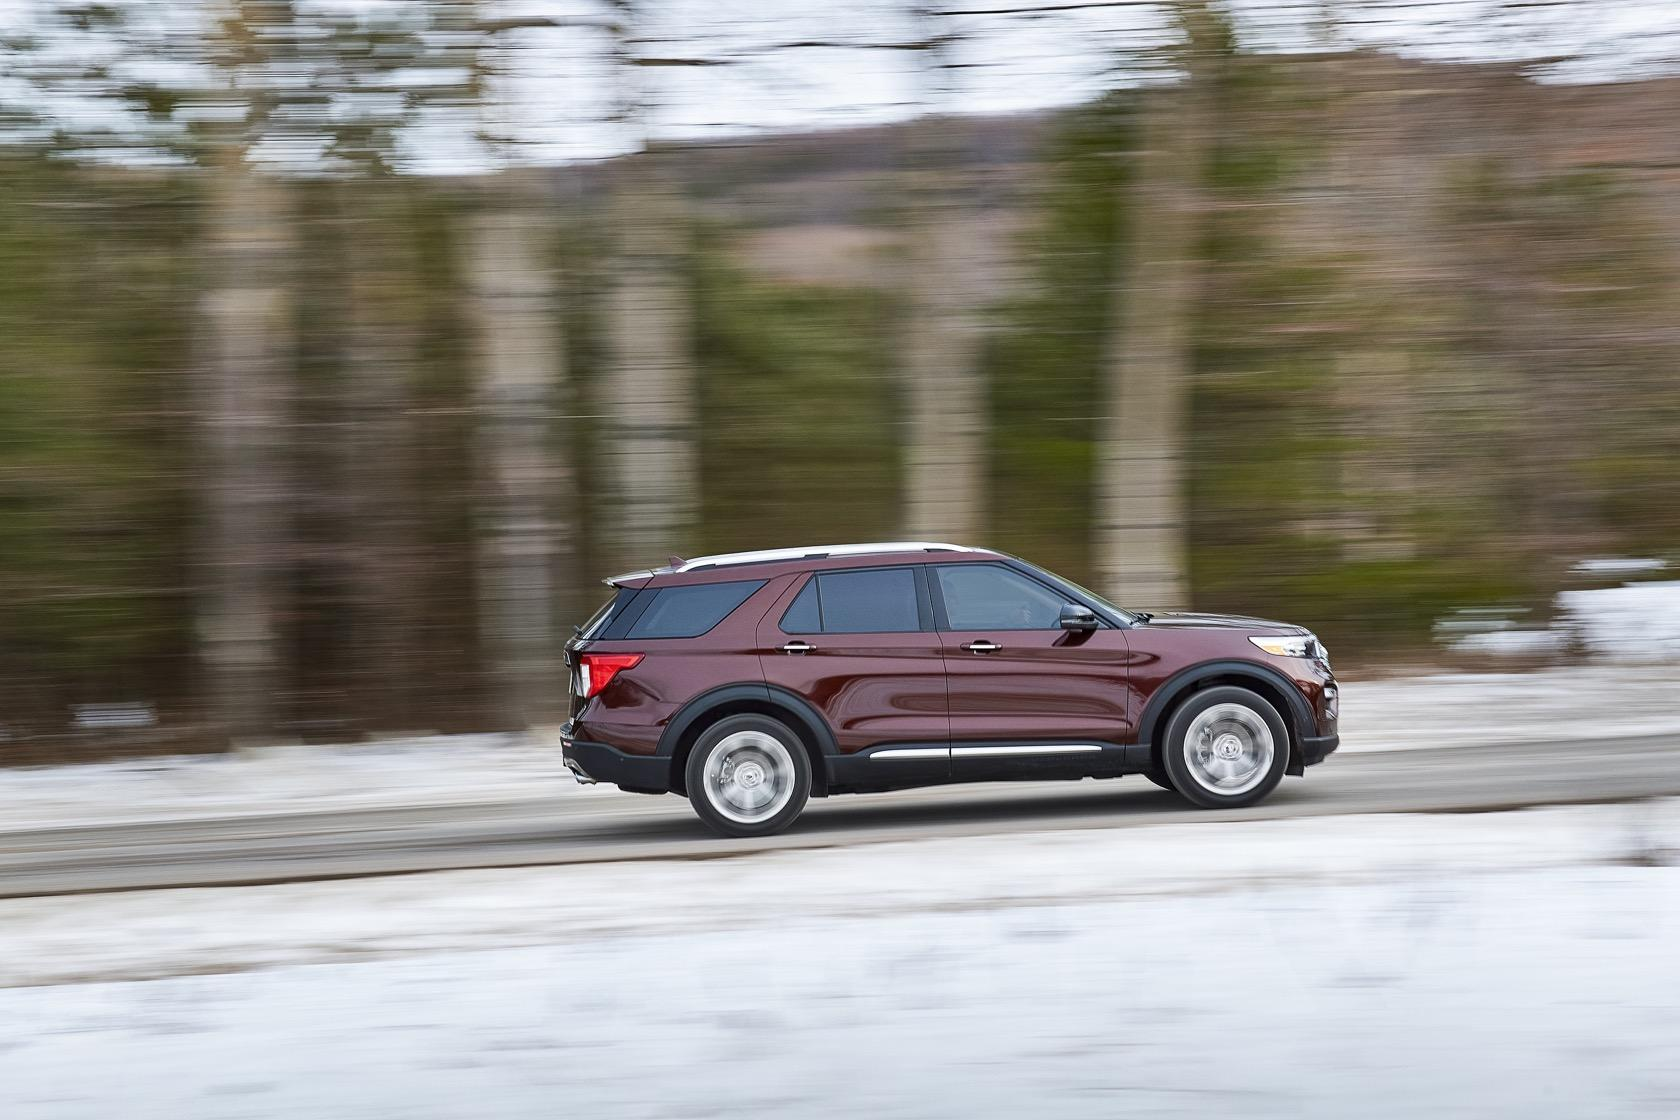 2020 Ford Explorer Gallery - SlashGear